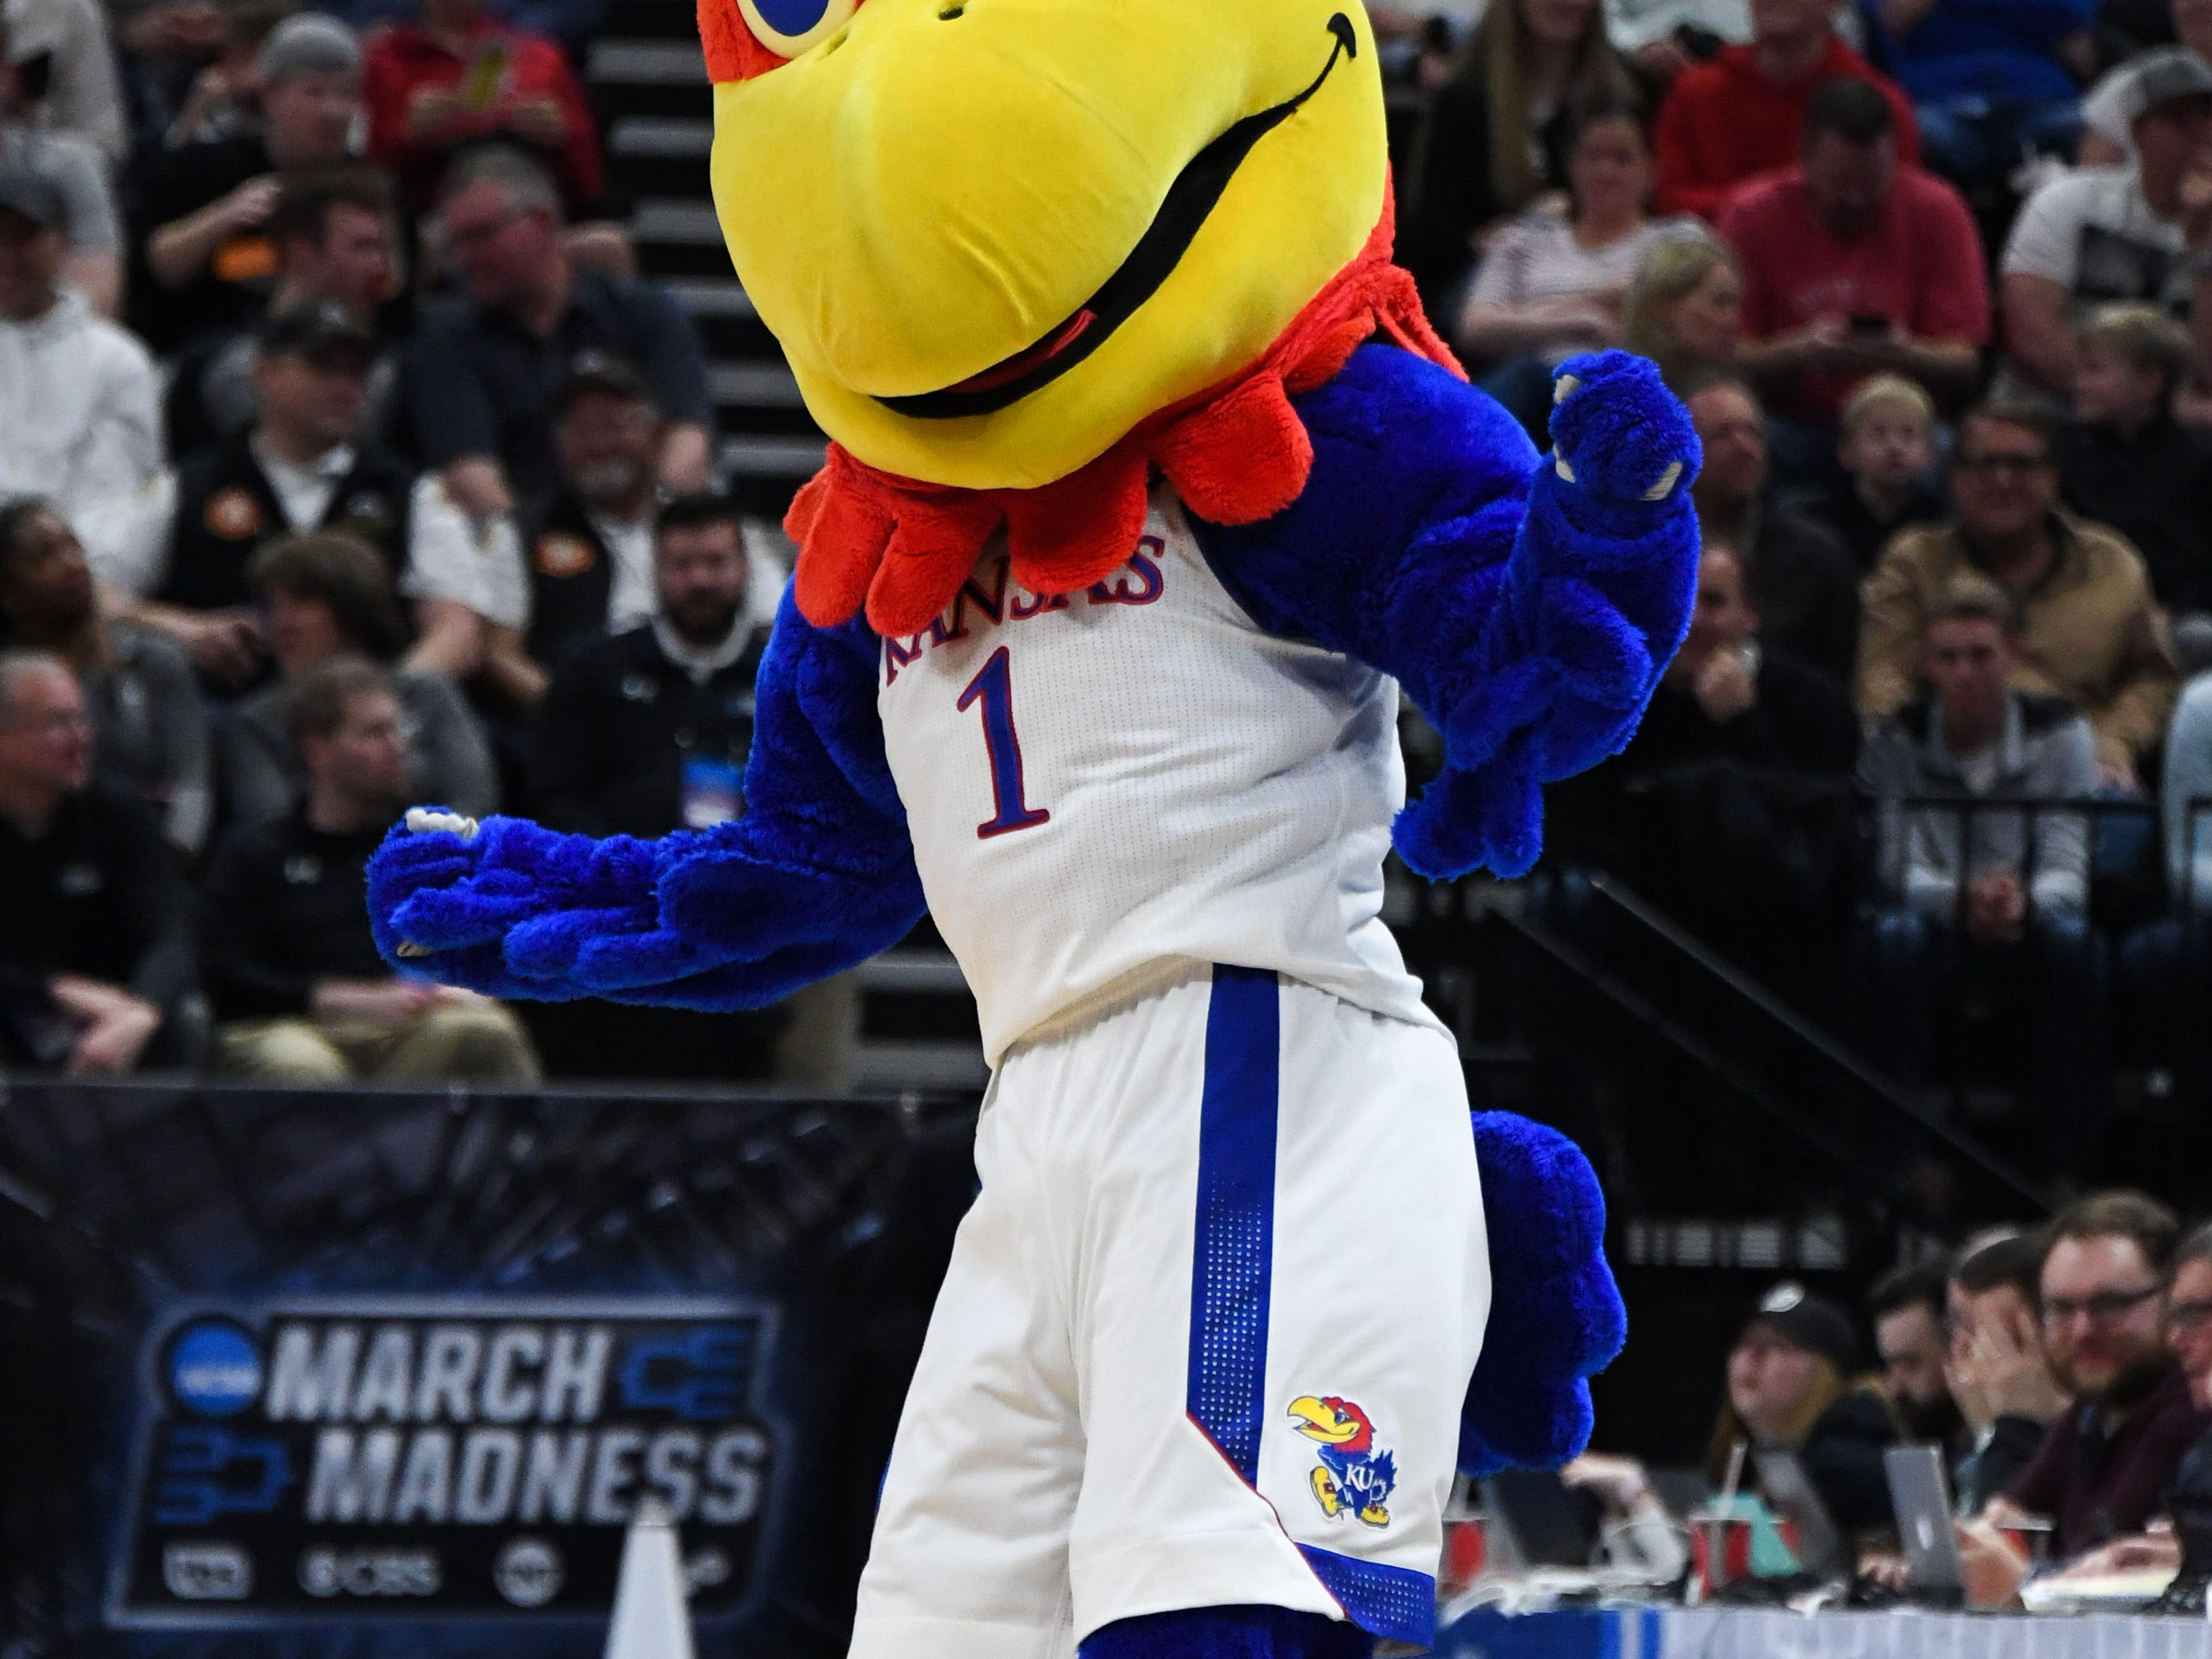 Mar 23, 2019; Salt Lake City, UT, USA; Kansas Jayhawks mascot performs during the first half in the second round of the 2019 NCAA Tournament against the Auburn Tigers at Vivint Smart Home Arena. Mandatory Credit: Kirby Lee-USA TODAY Sports